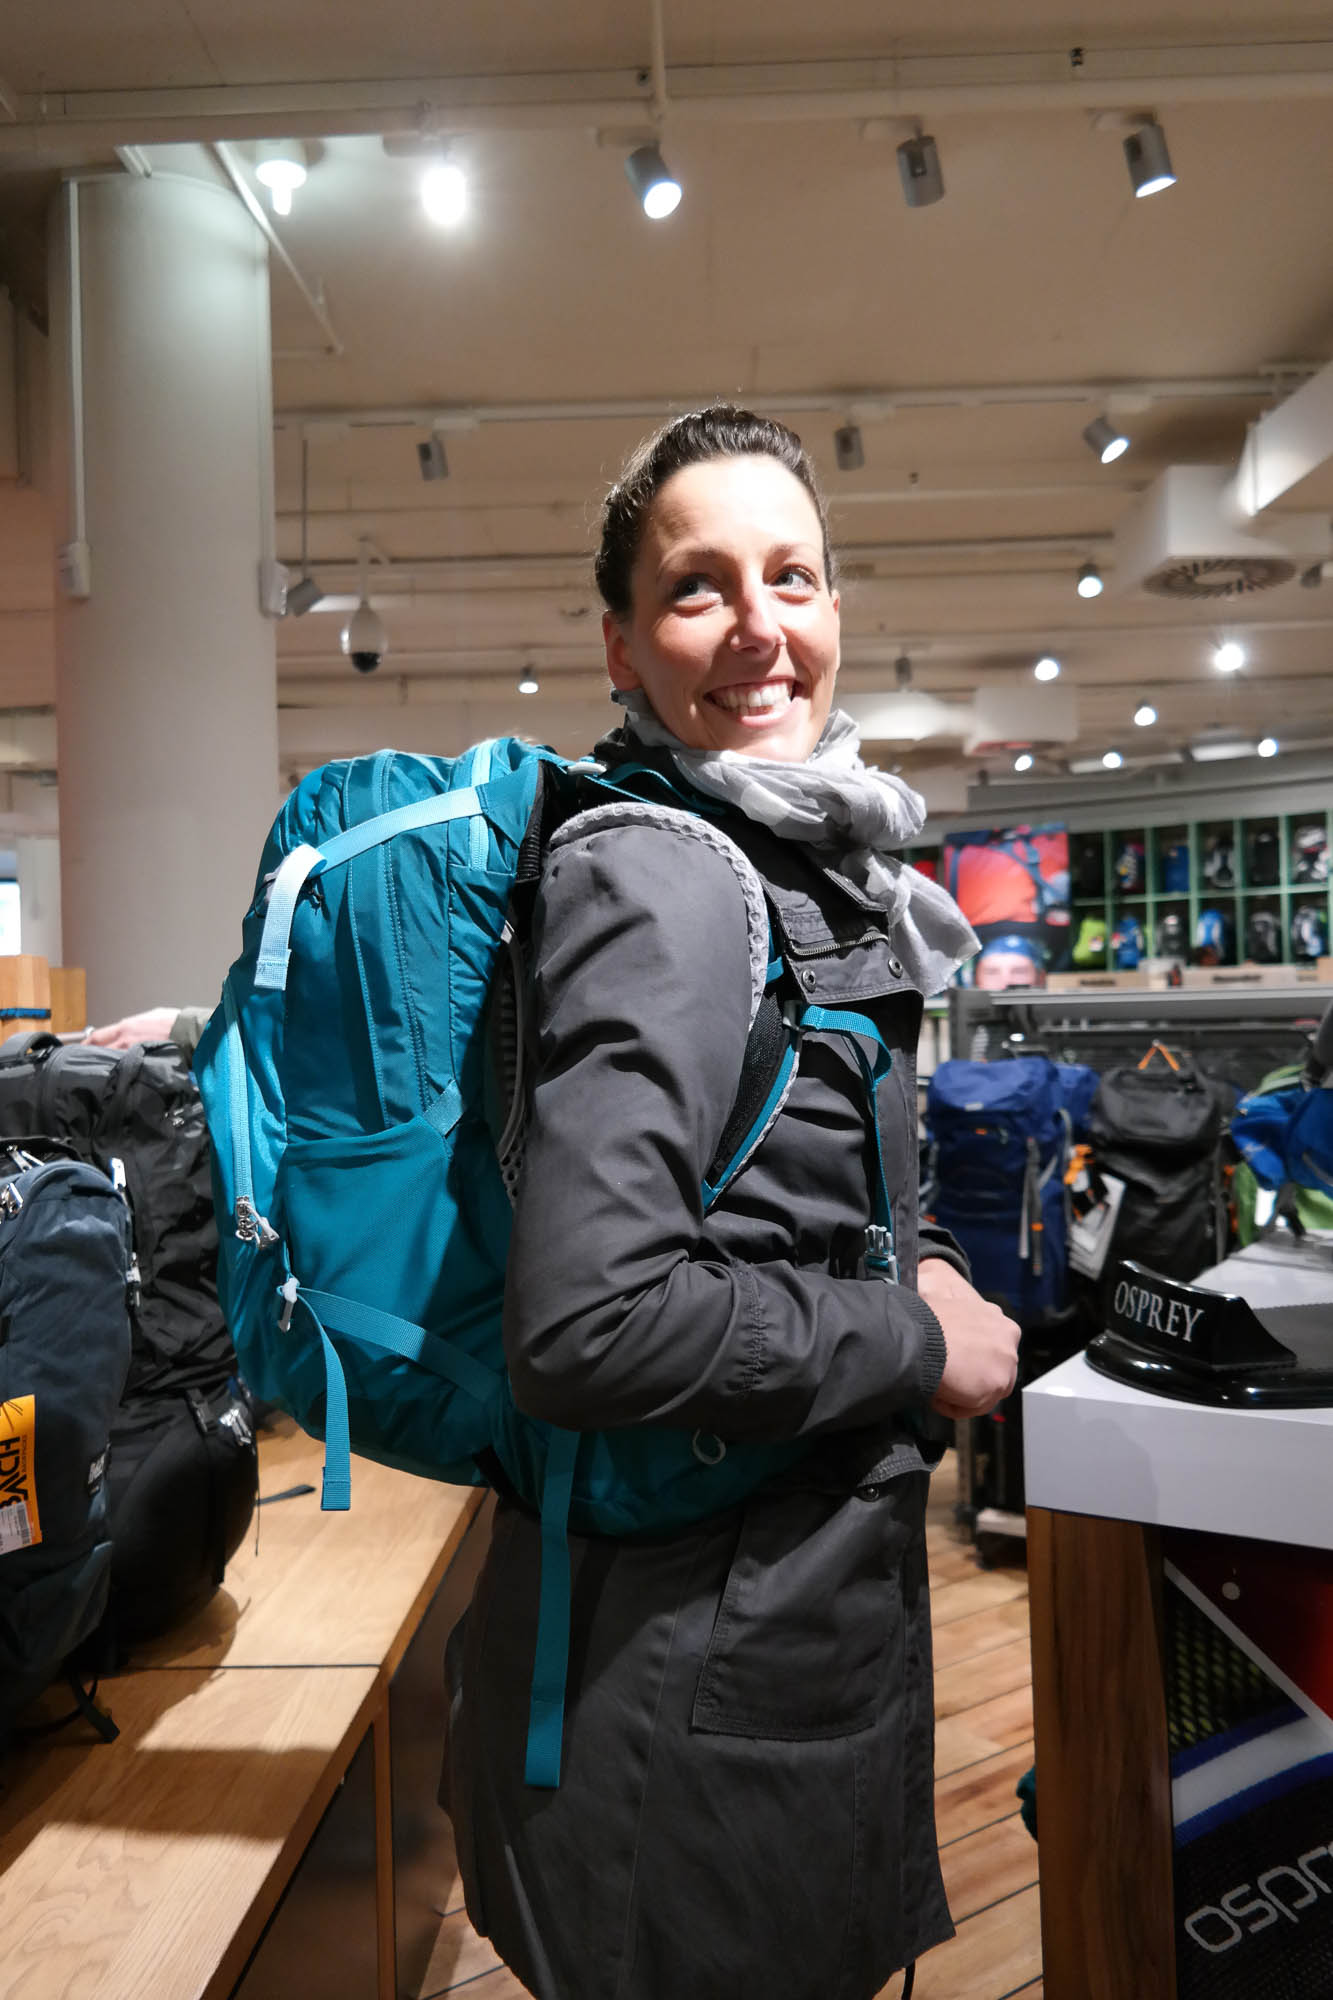 Ein Tag bei Globetrotter: Outdoor-Nerd vs. Hipster-Sister